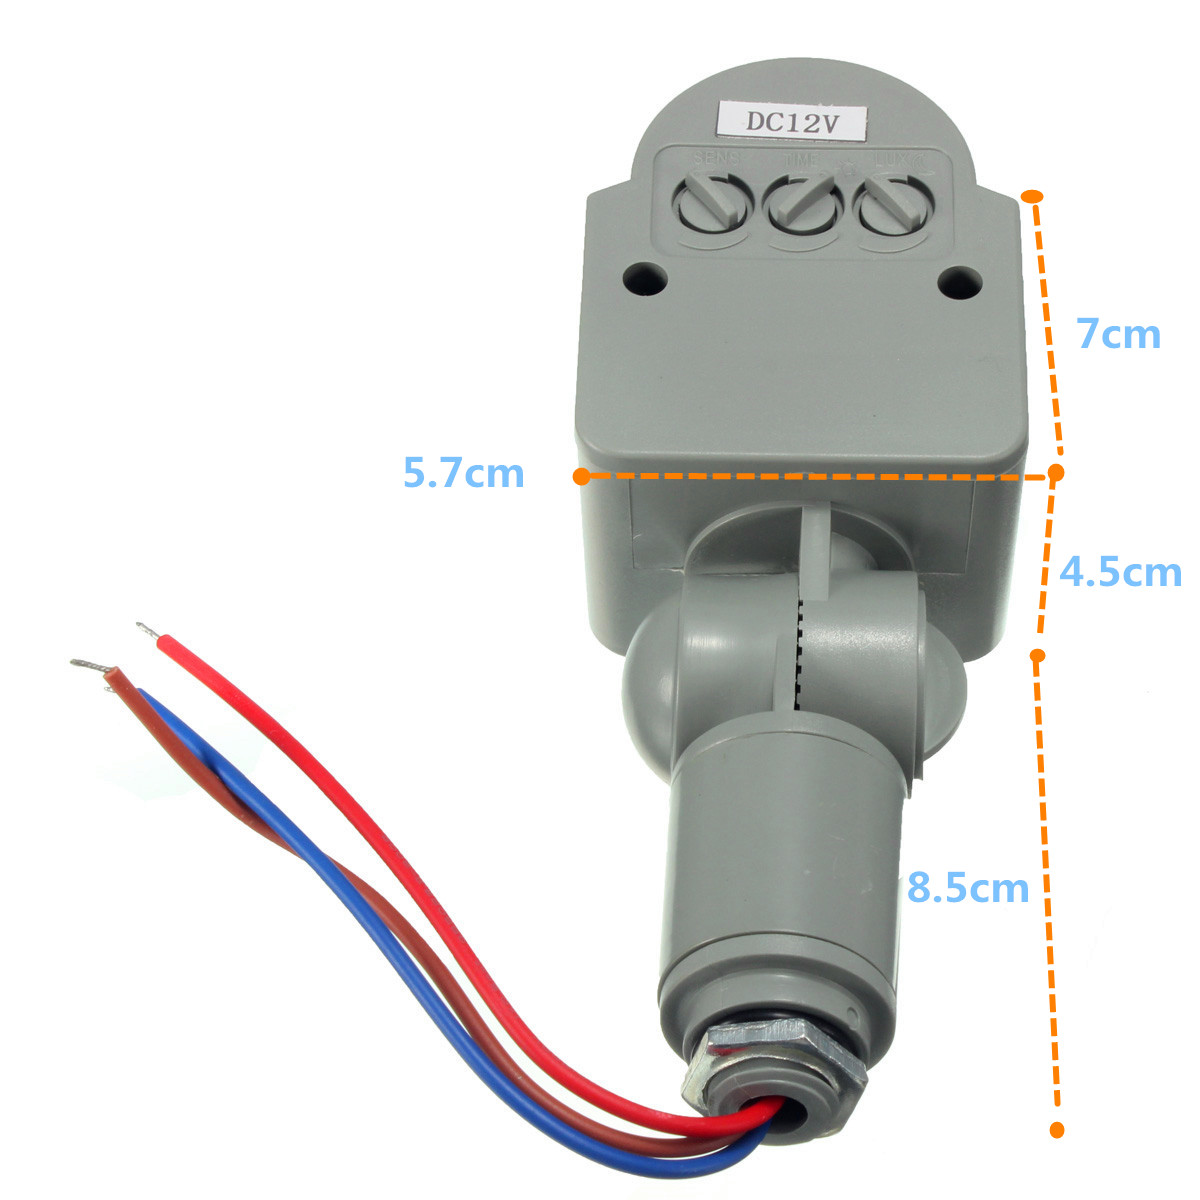 12V DC Outdoor Automatic Infrared PIR Human Motion Sensor Switch for ...